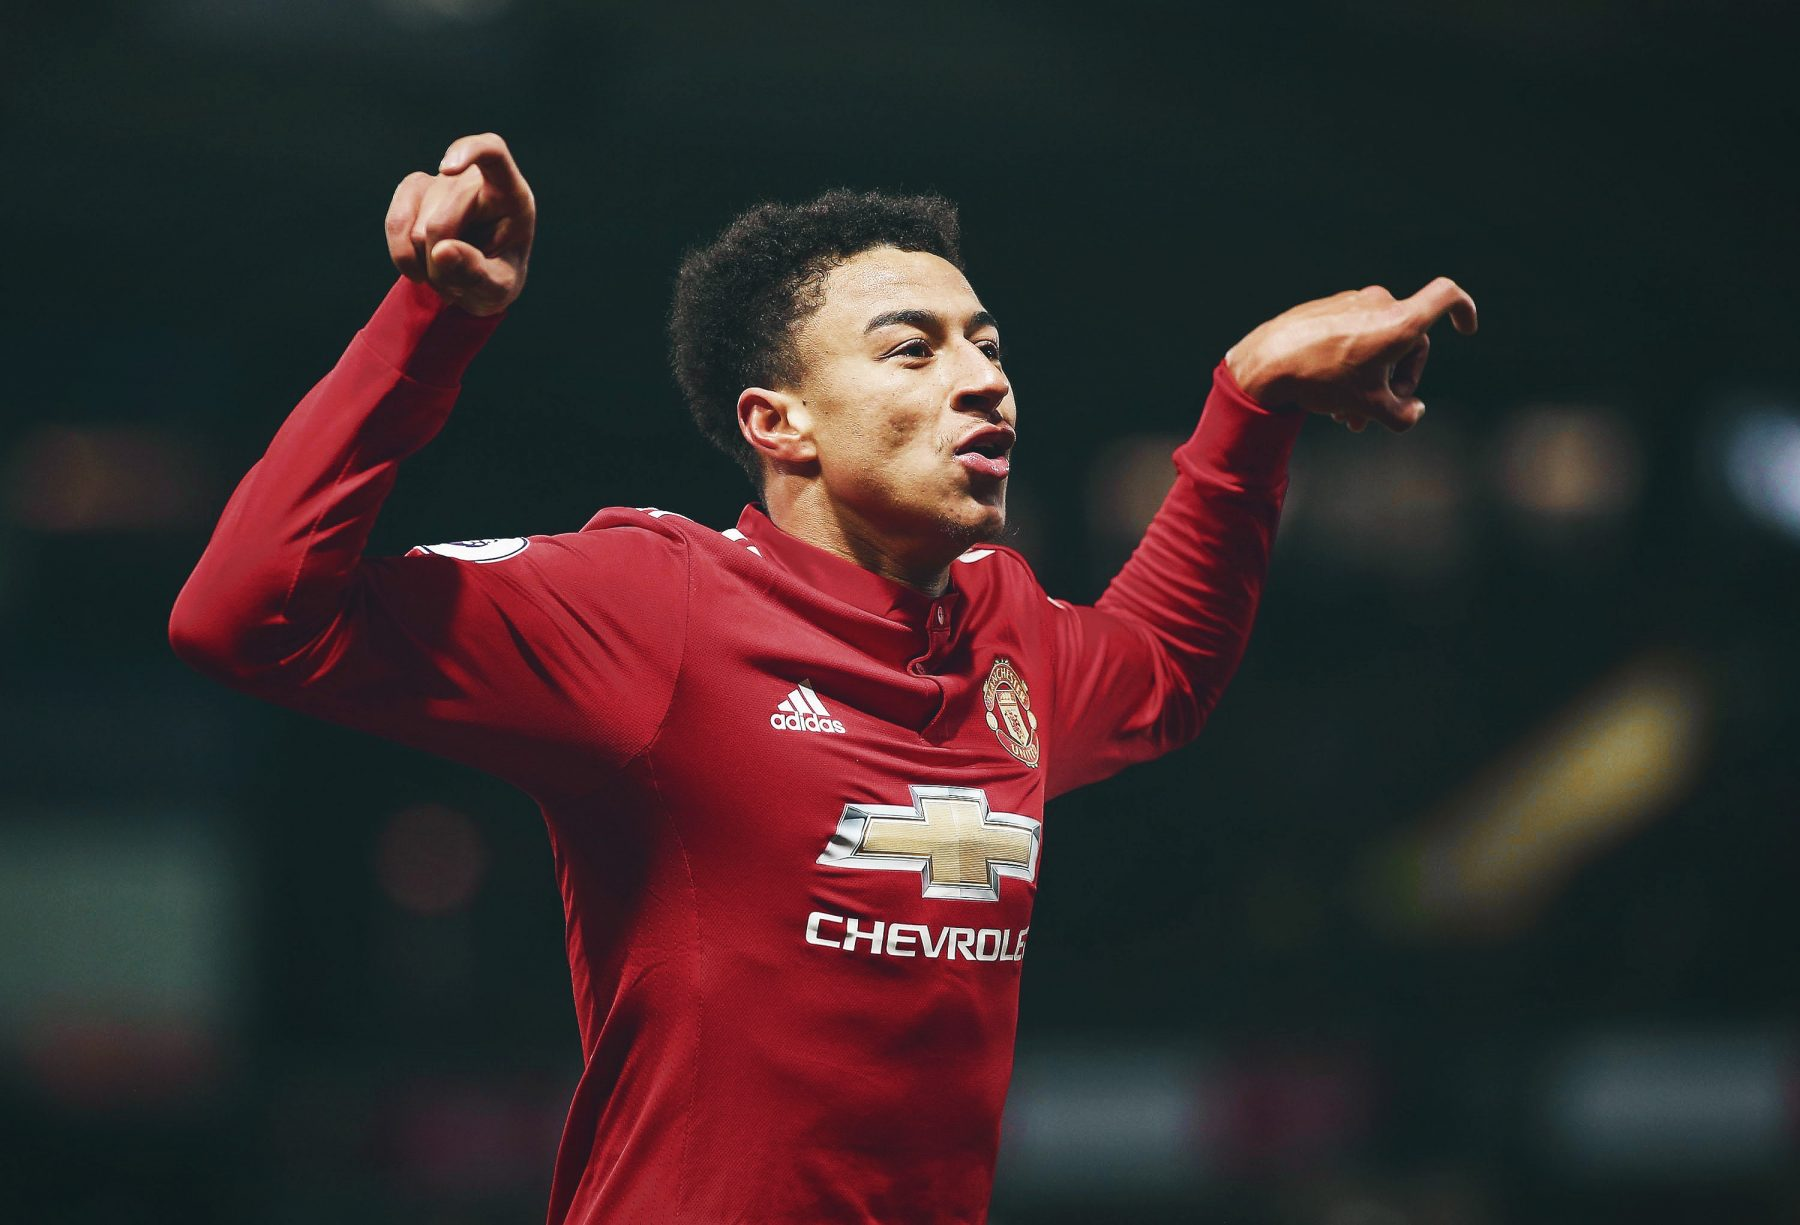 263e6bf21 Read | Jesse Lingard: the unlikely rise to stardom of a divisive but  persistent talent